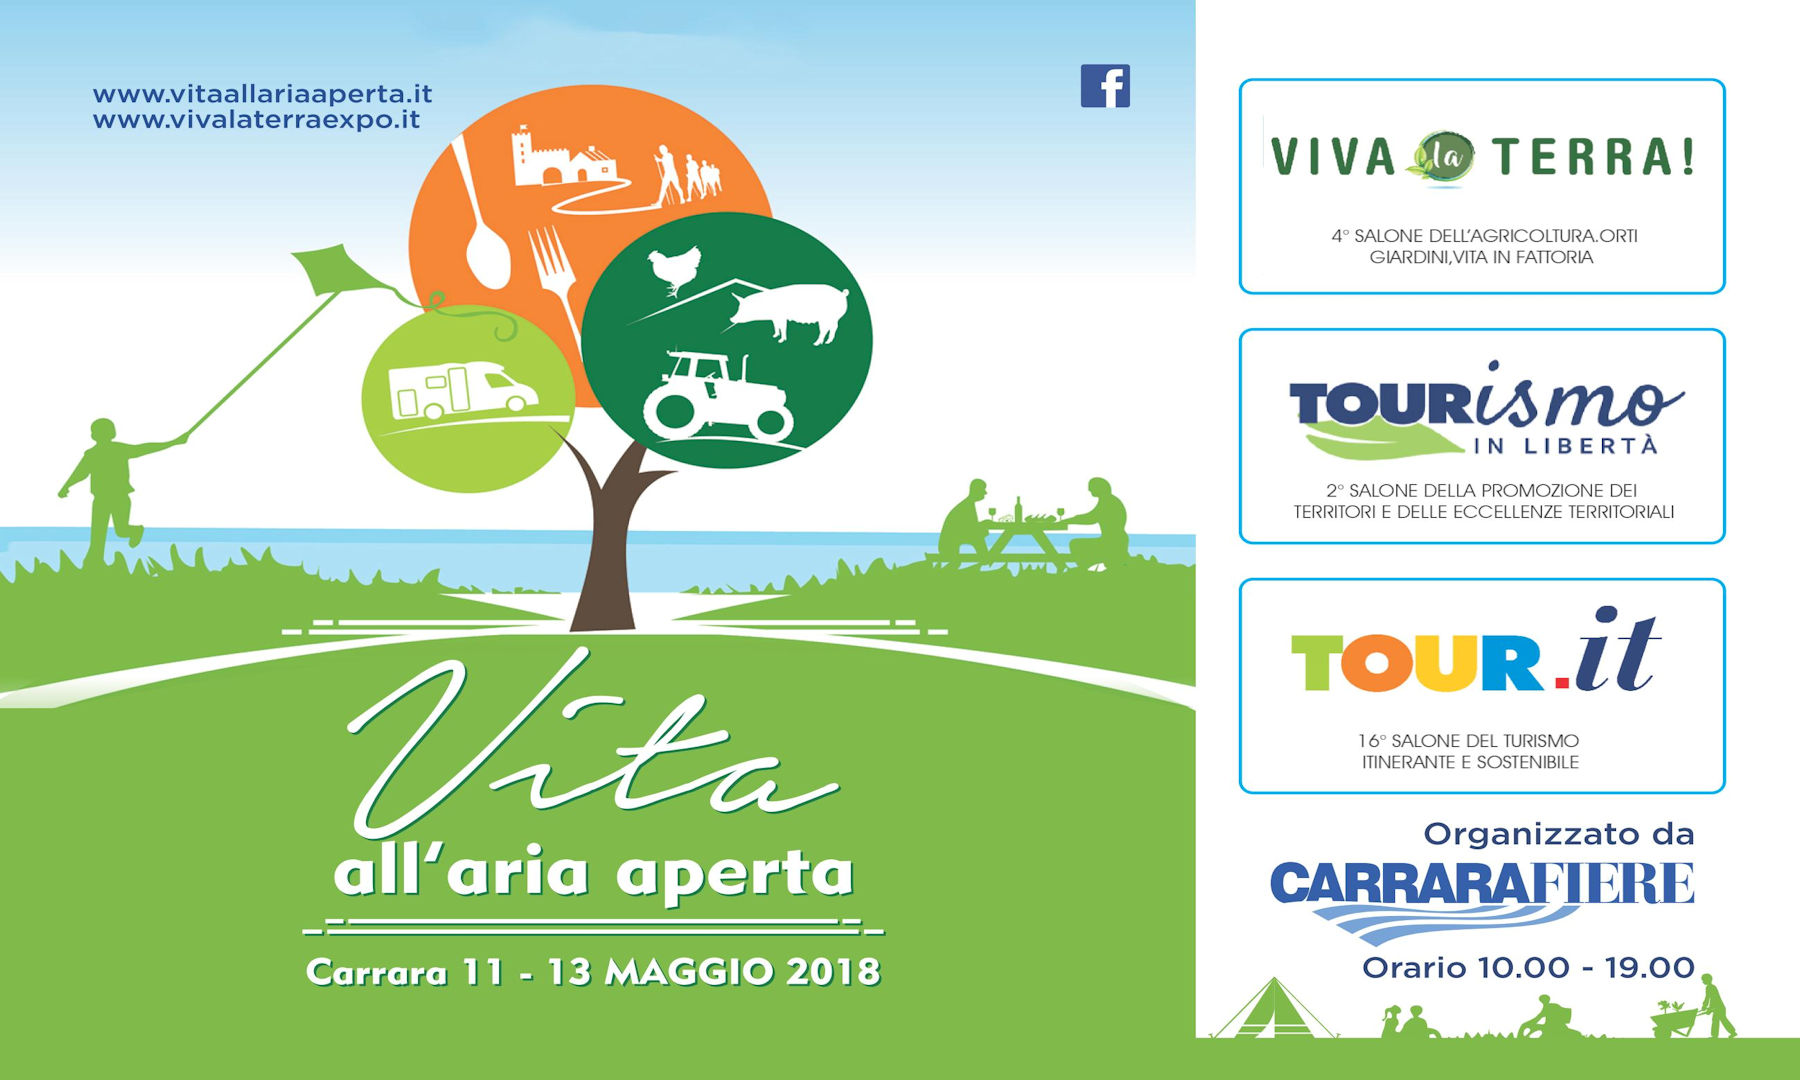 Vita all'aria aperta – Tour.it 11-13 Maggio 2018